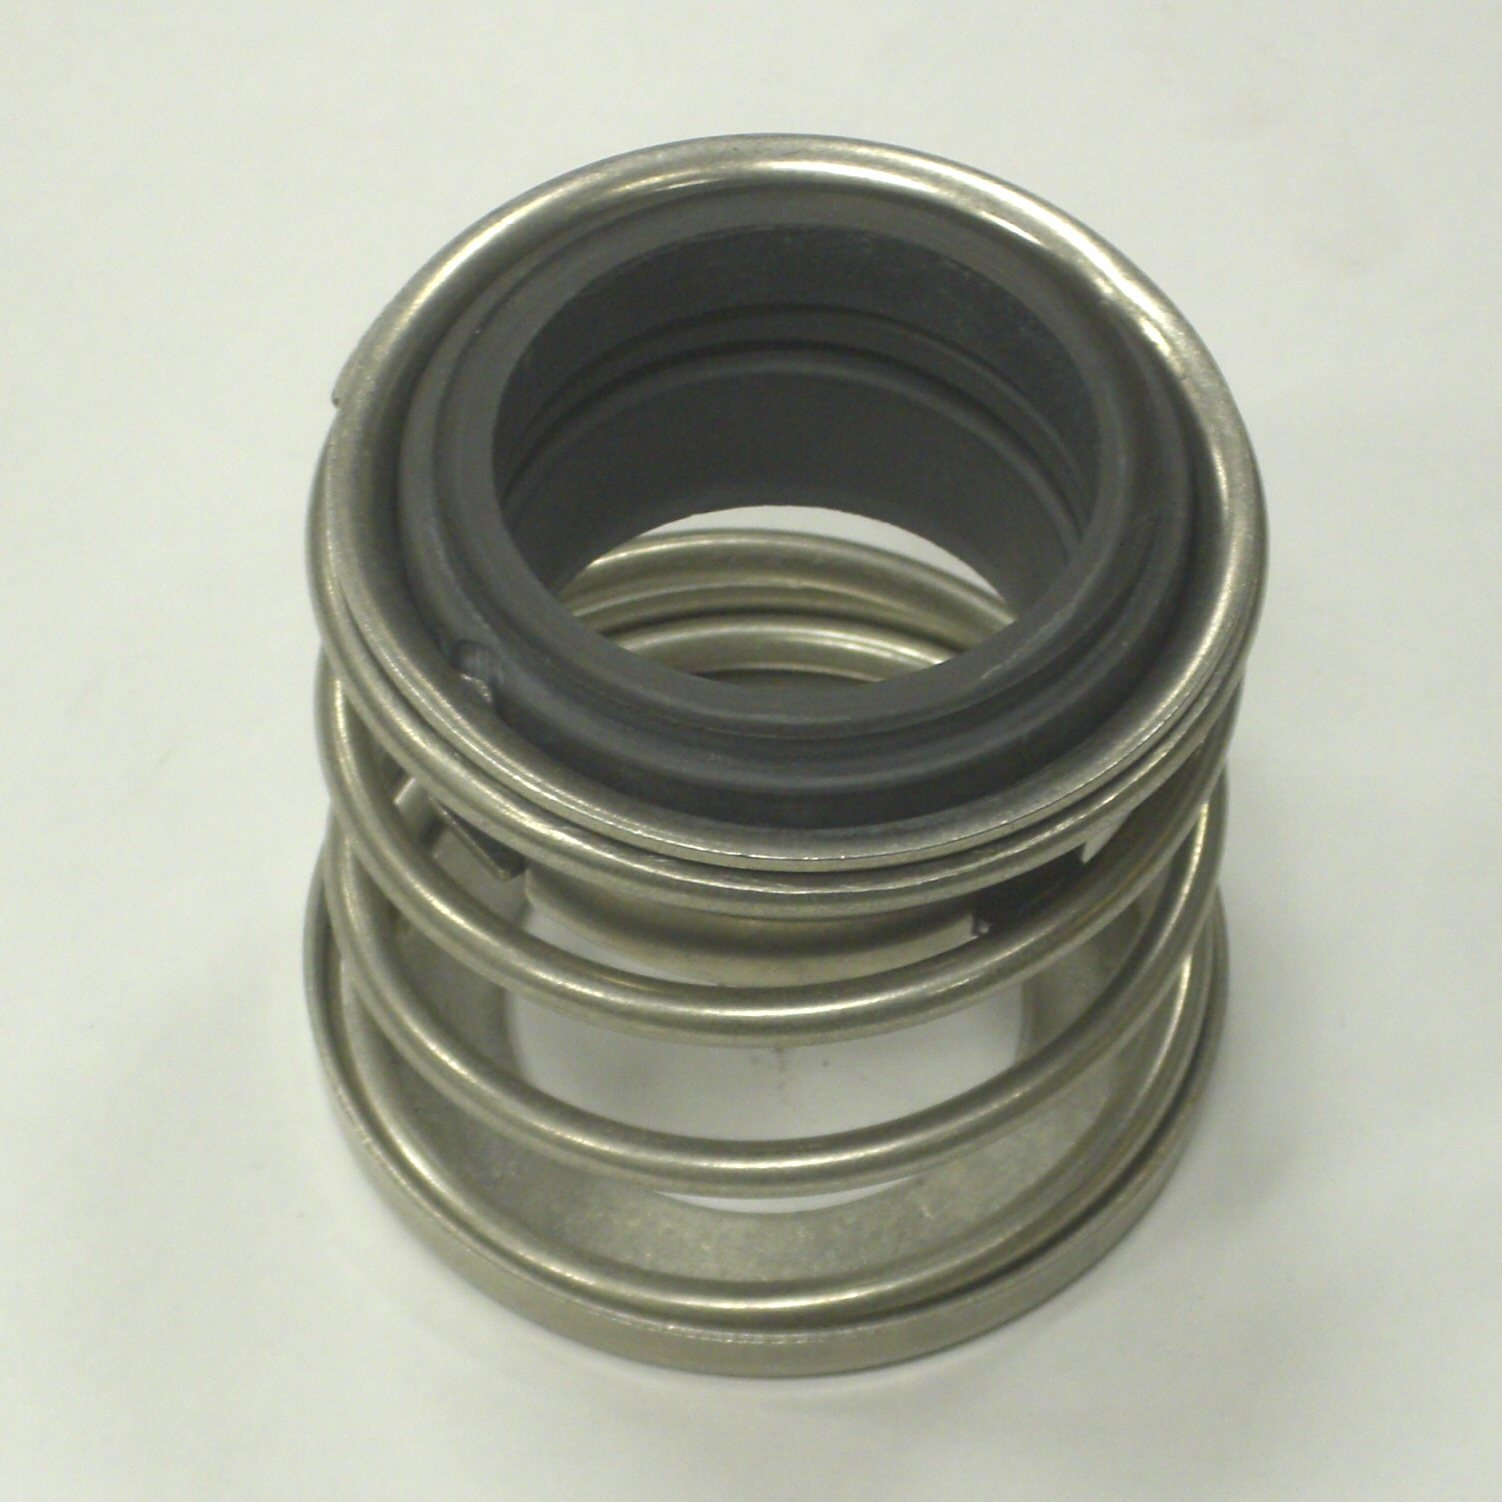 Mechanical seal part01.jpg